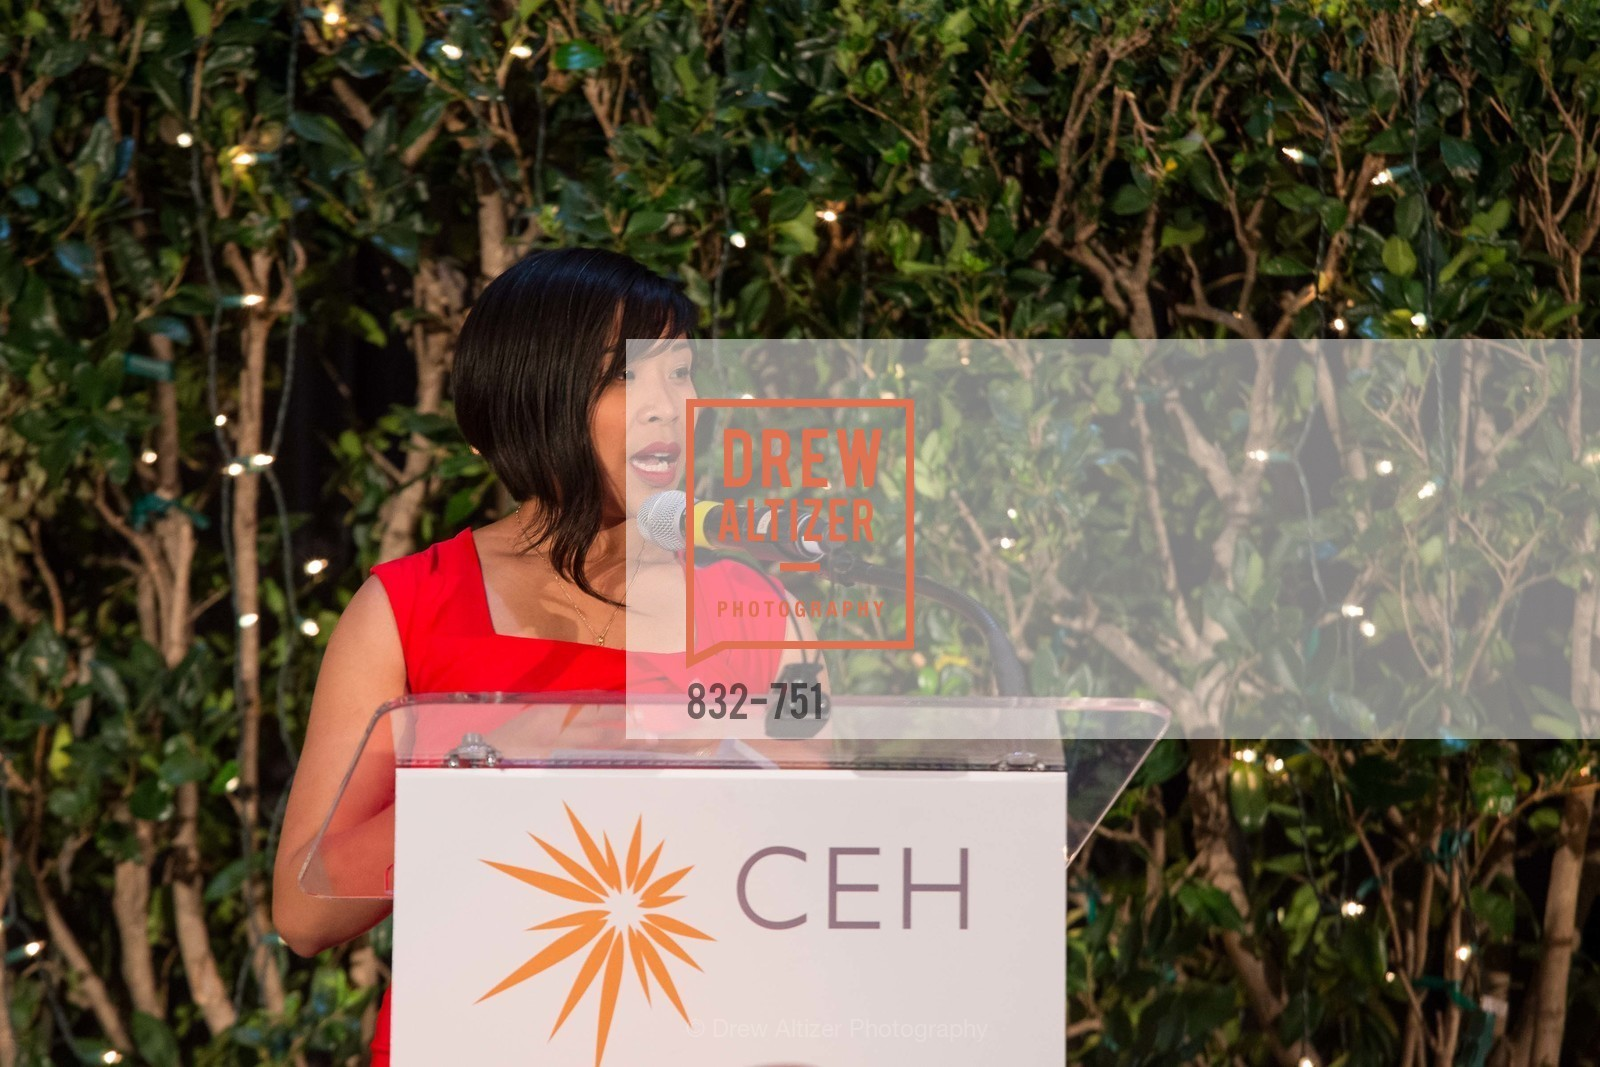 Christine Cordero, CENTER FOR ENVIRONMENTAL HEALTH (CEH) 2015 Gala, US, May 28th, 2015,Drew Altizer, Drew Altizer Photography, full-service agency, private events, San Francisco photographer, photographer california